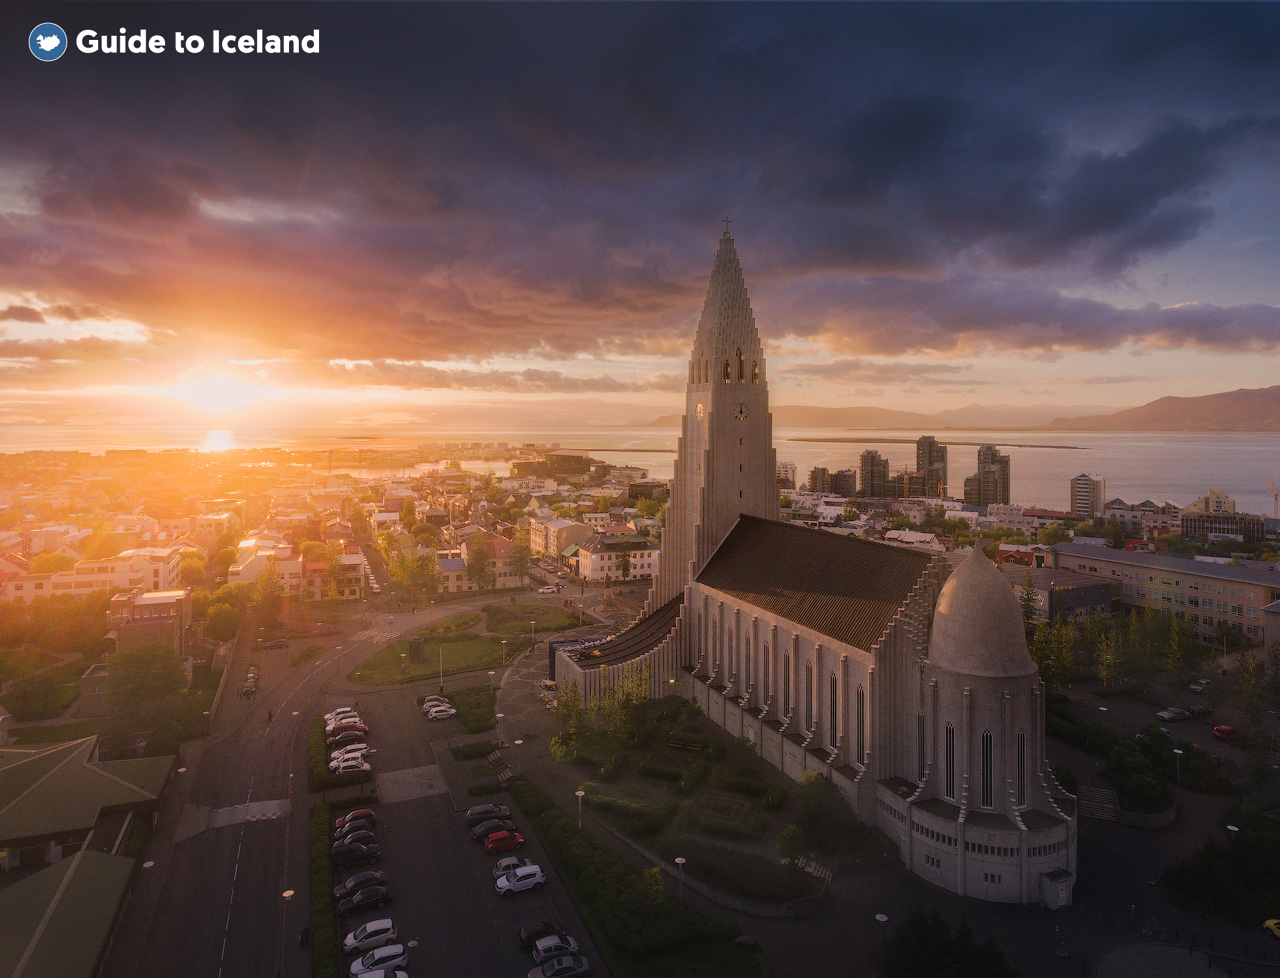 An overhead shot of Hallgrimskirkja Church in downtown Reykjavik.